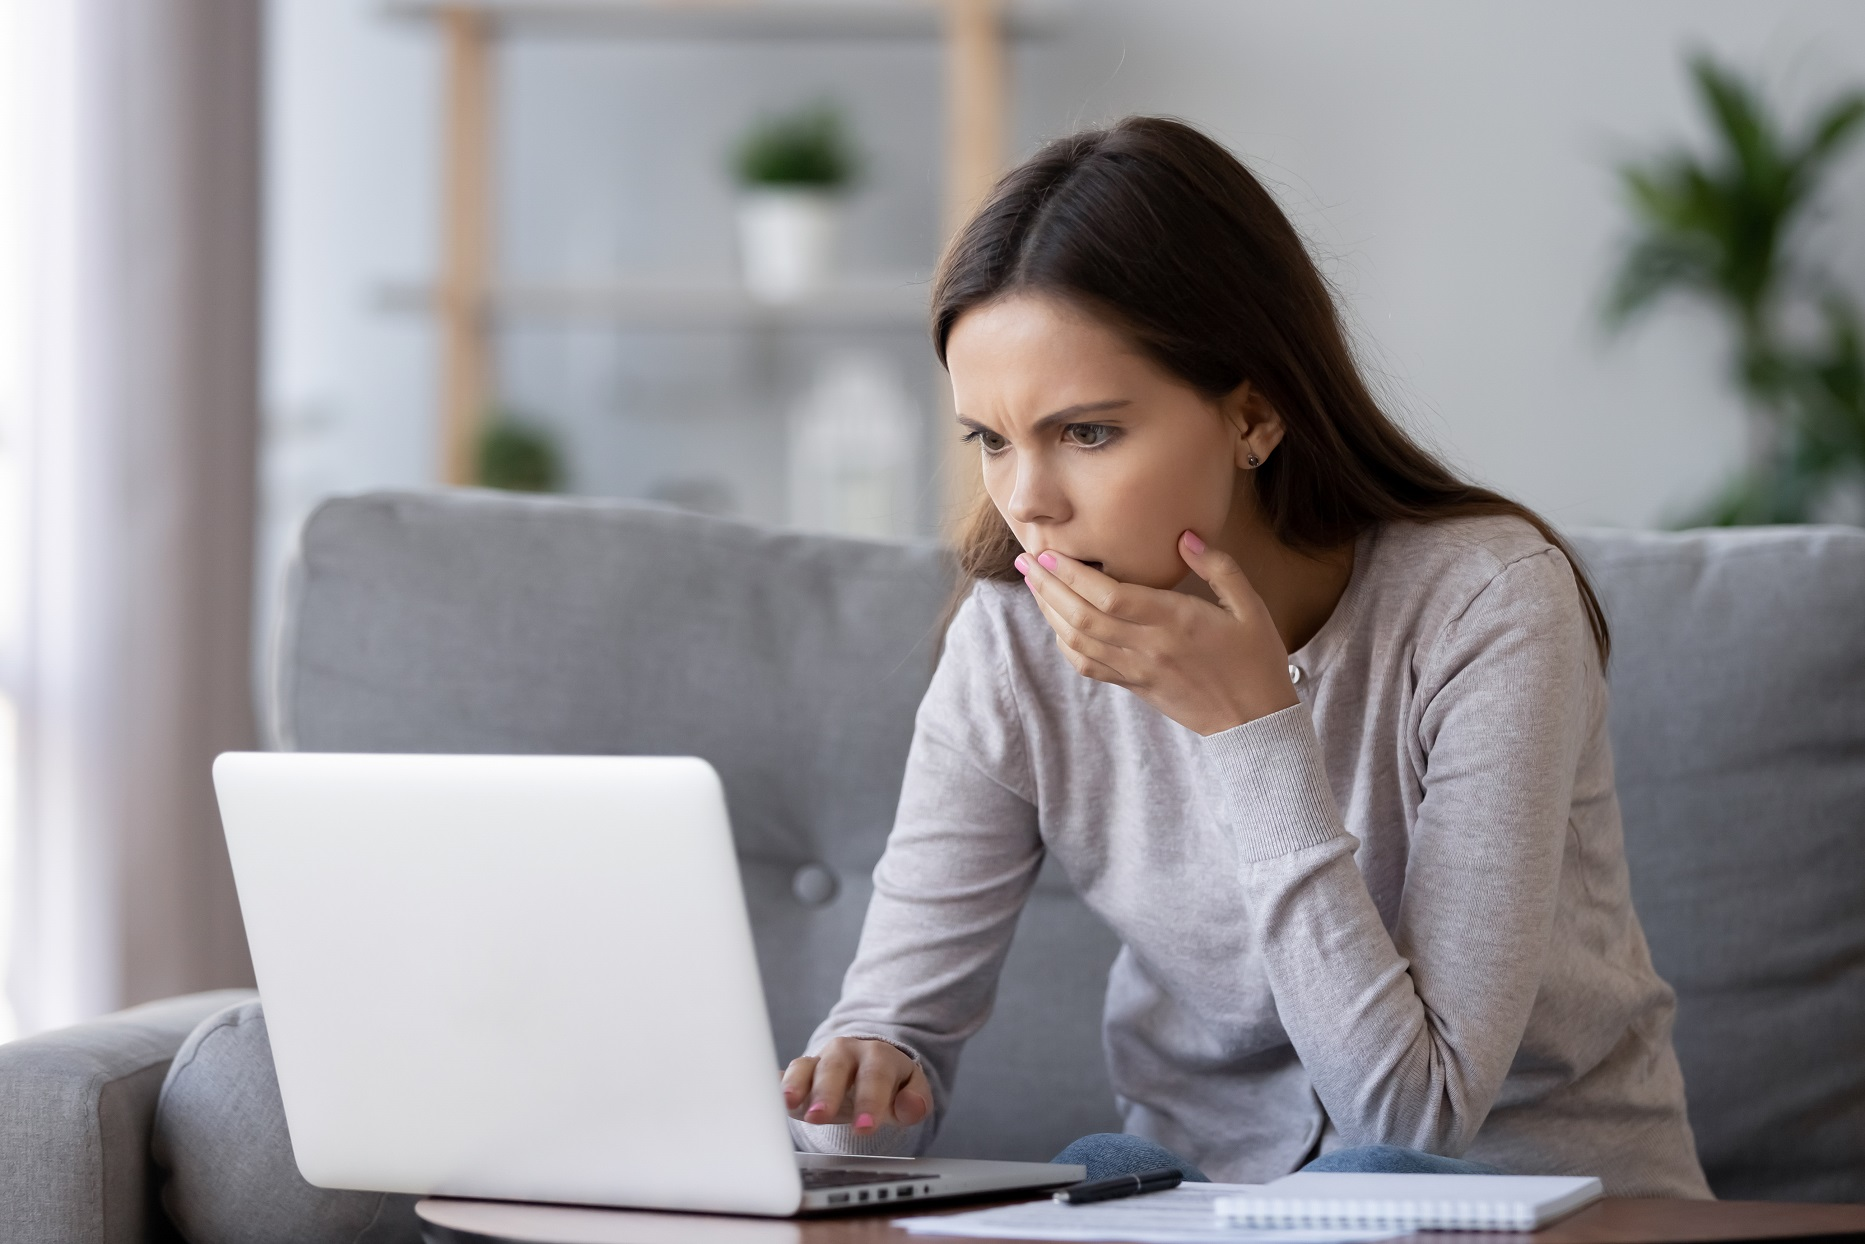 Woman Shocked Looking at Laptop